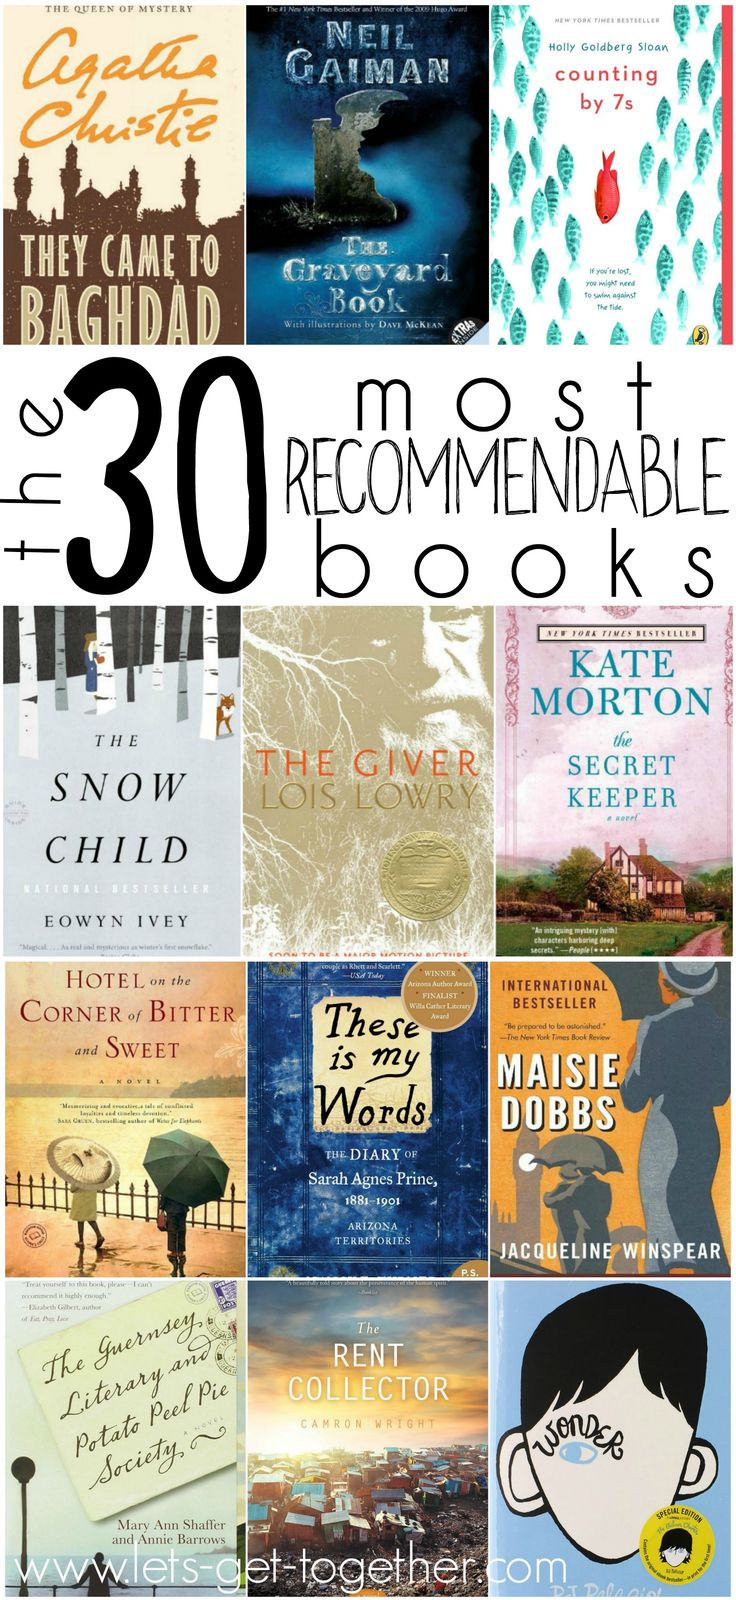 Another thirty book recommendations! Looks like there's some goodies in here.